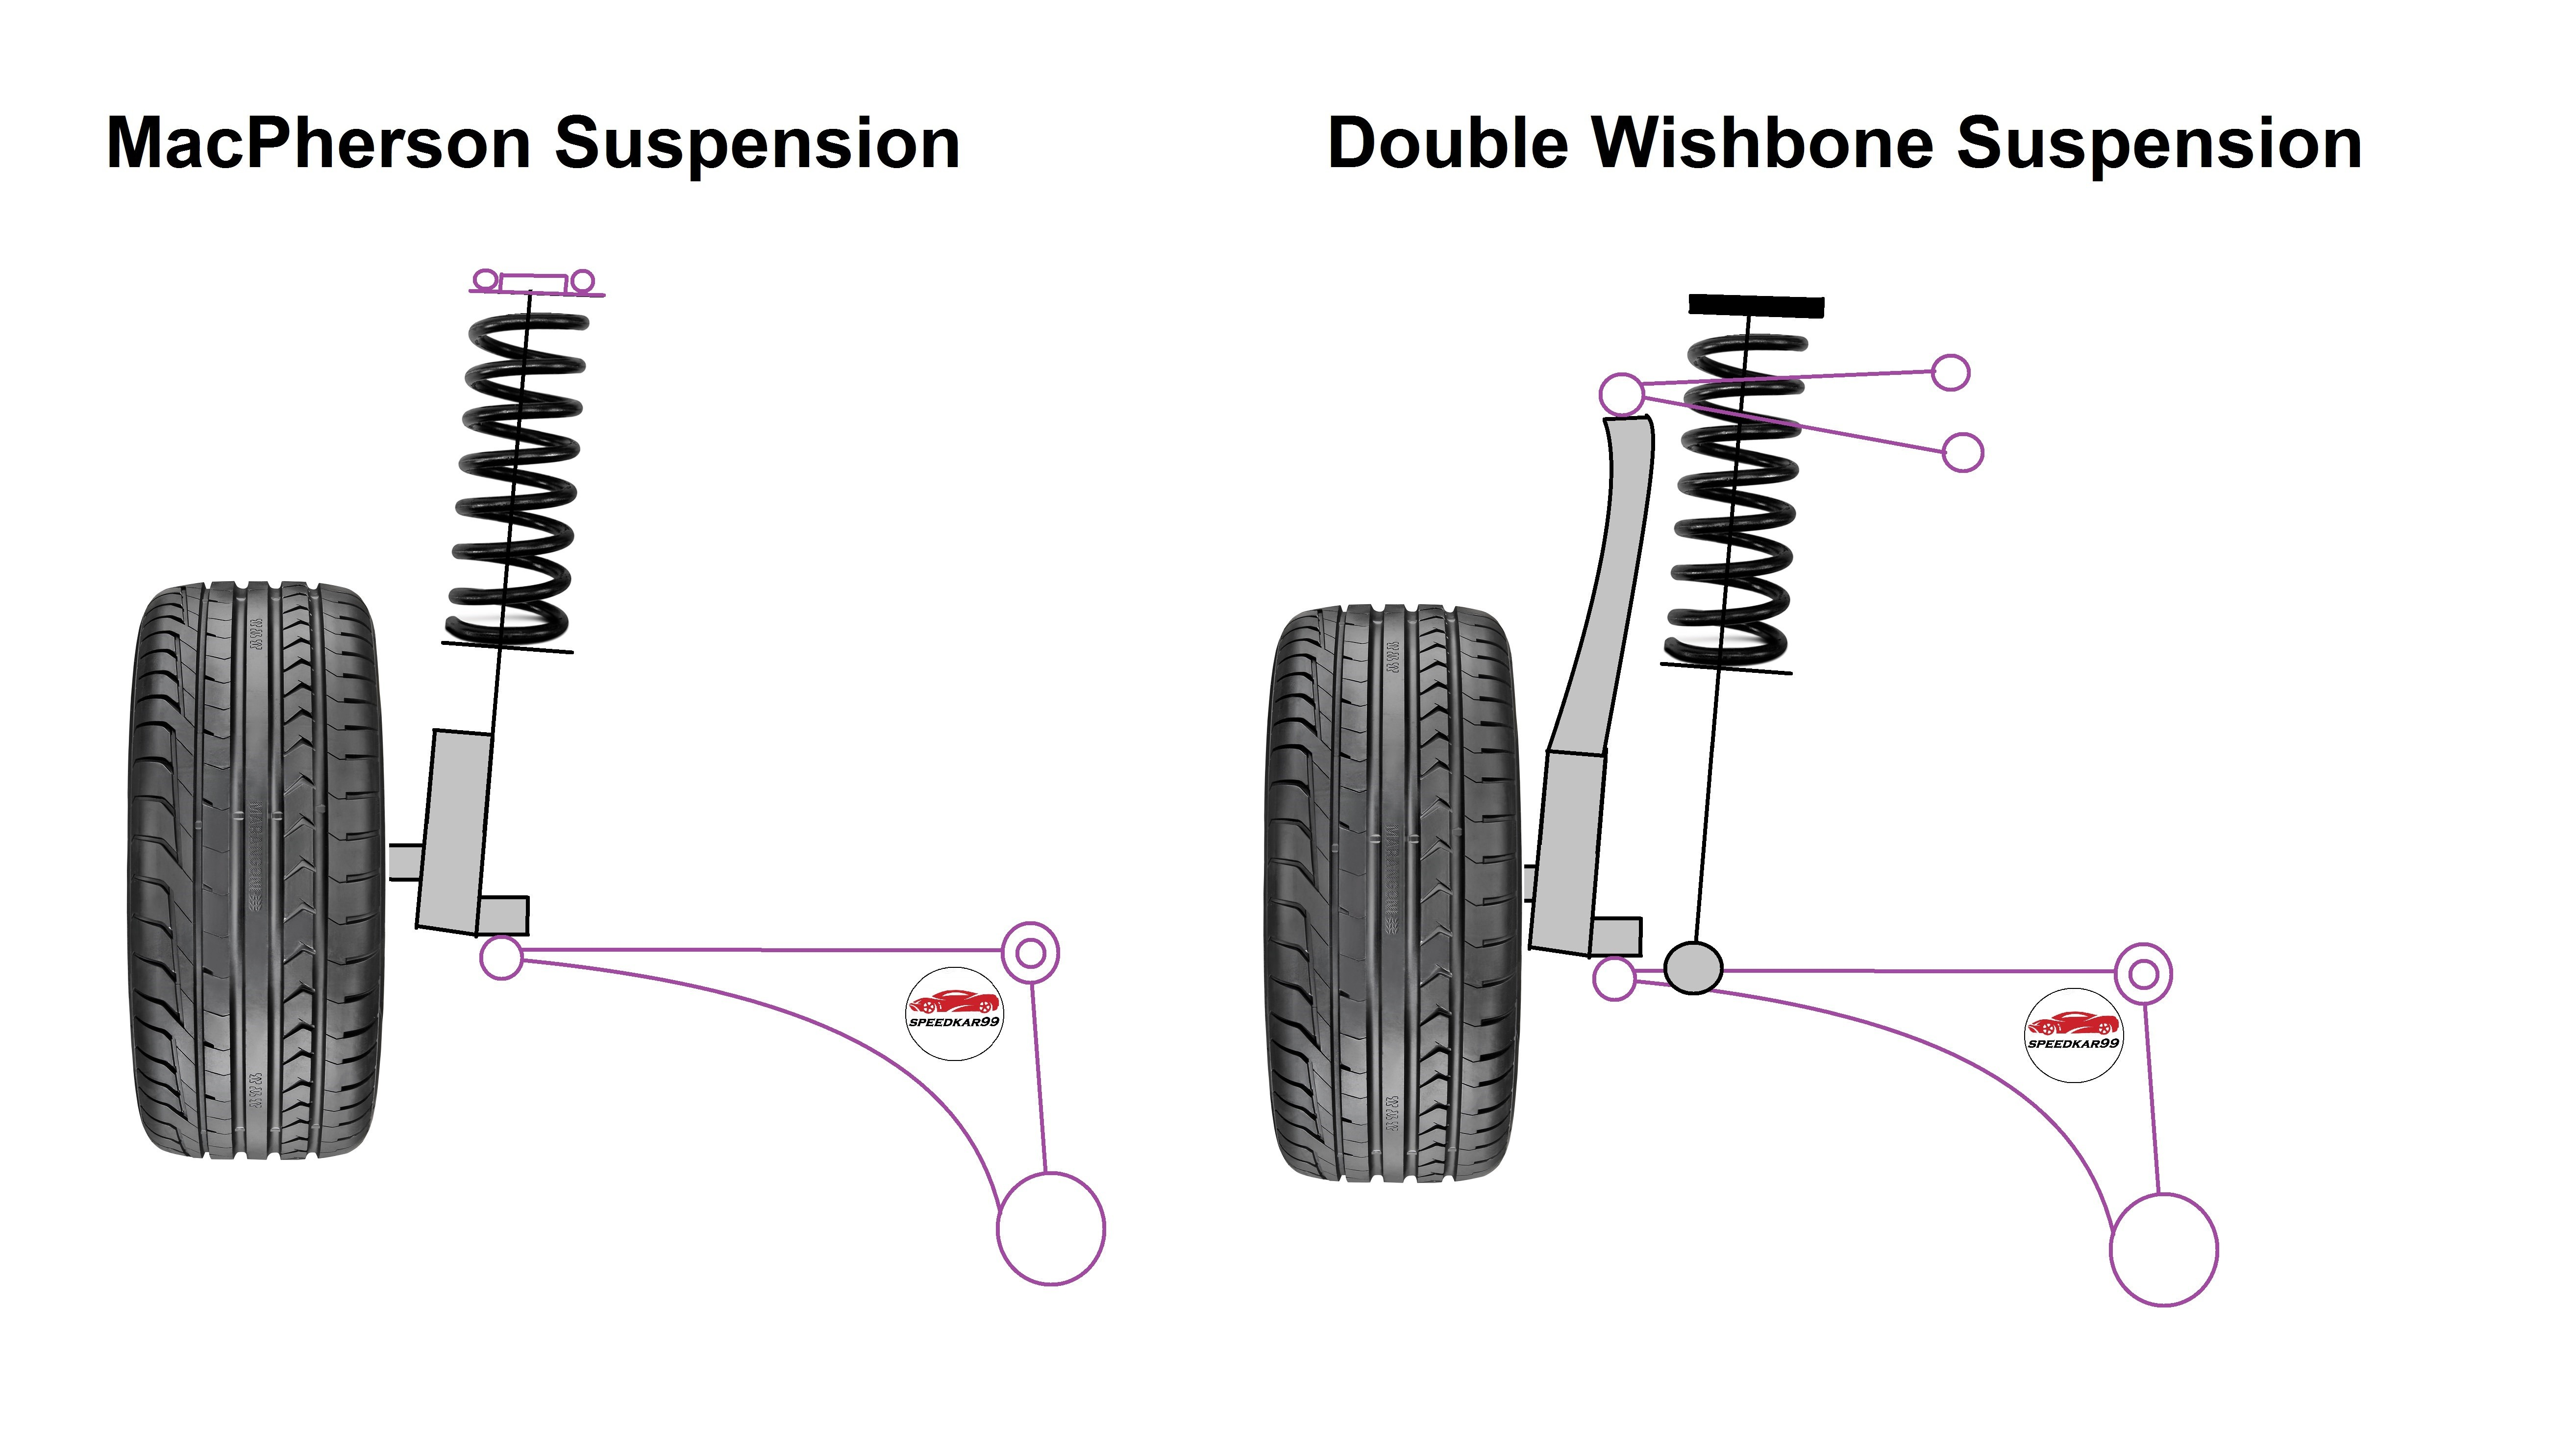 Macpherson Suspension Diagram How A Car S Suspension Works Clublexus Lexus forum Discussion Of Macpherson Suspension Diagram